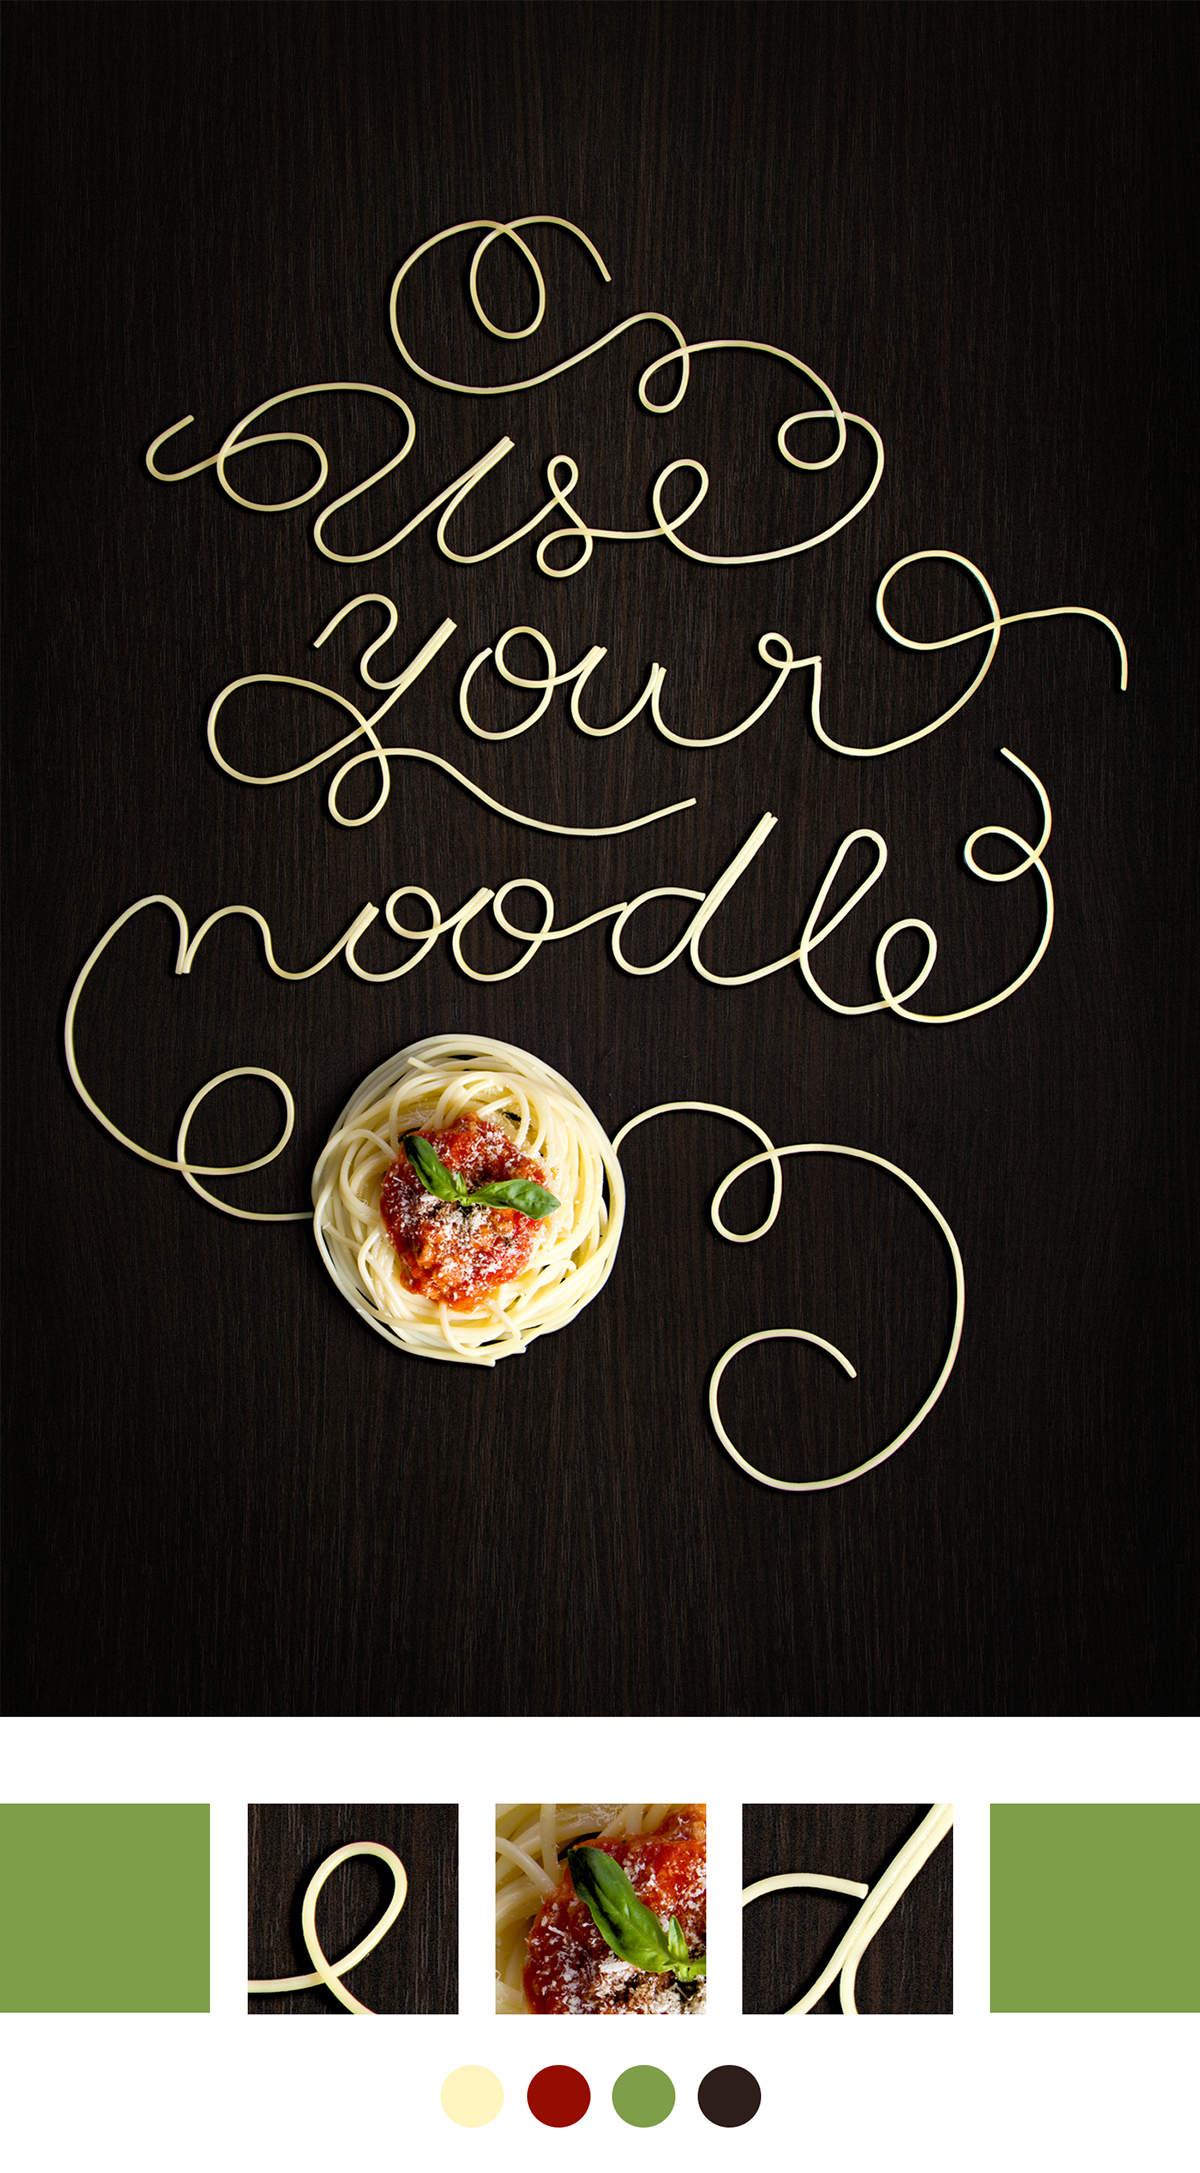 Food  poster Hungry life recipes Pizza Pasta noodles Cherries cake Typographic Treatment  Typeface Design lettering  illustrated typography food letters